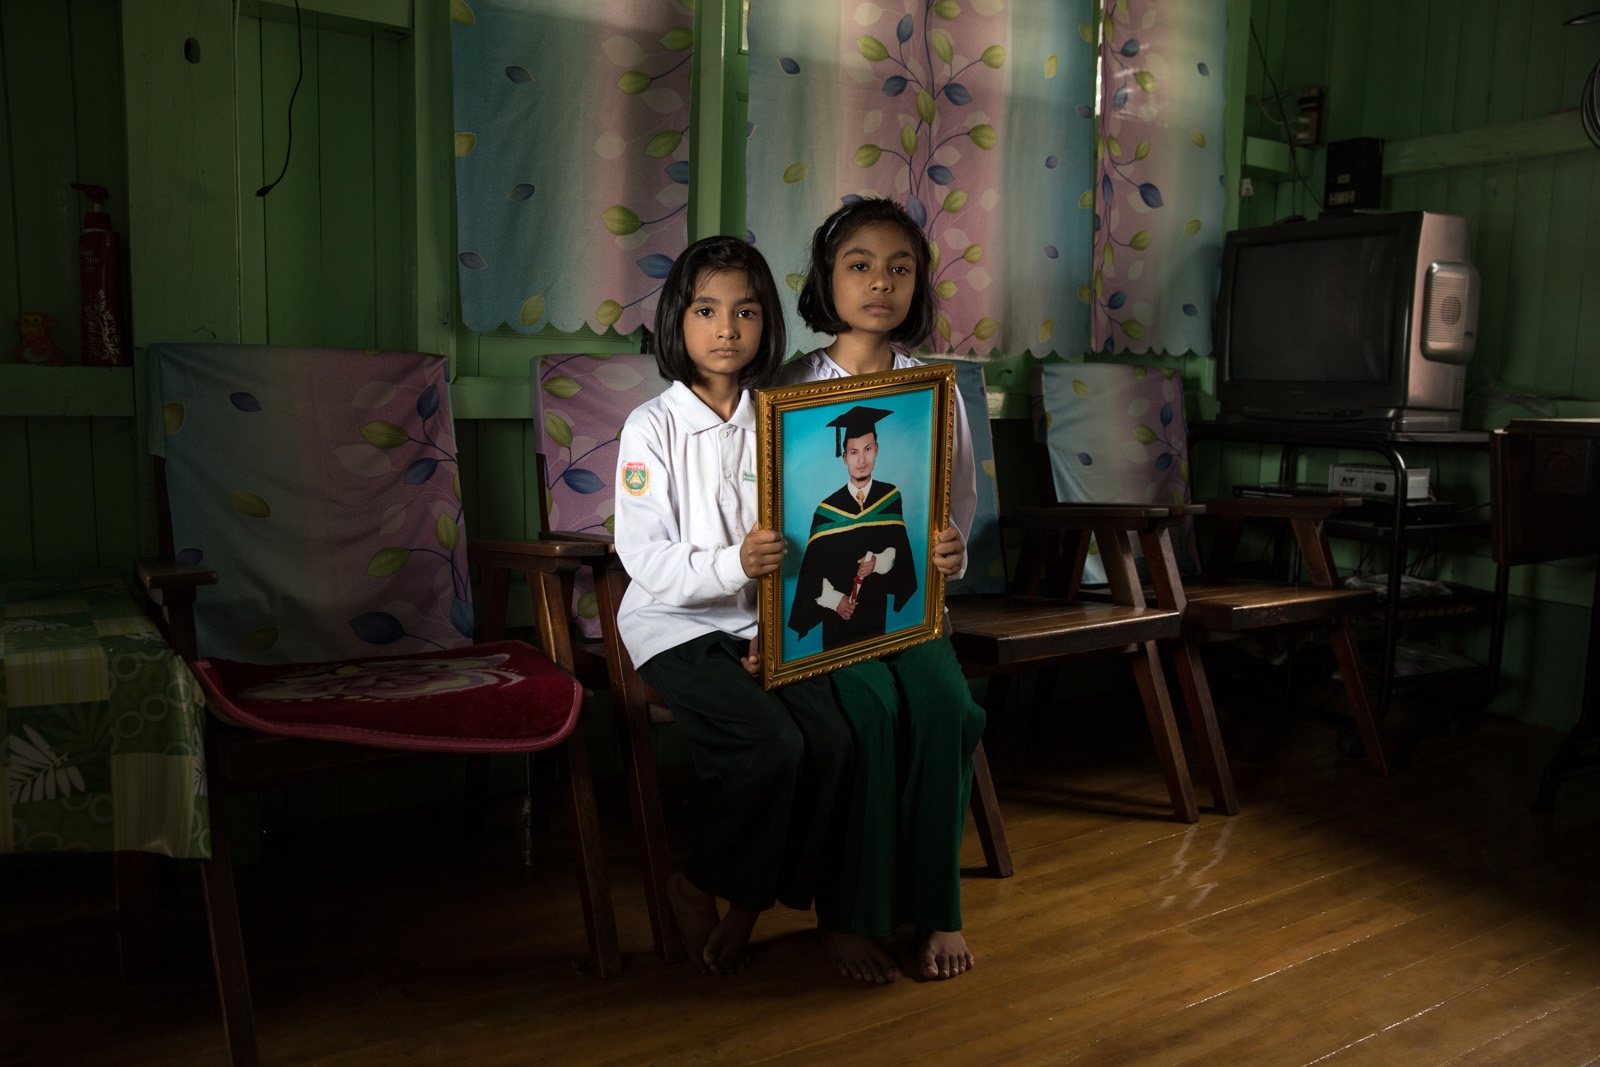 The two daughters of arbitrarily detained Than Khaing hold his portrait in their house in Taungyi town. Myanmar military intelligence arrested 32-year old Than Khaing while he was traveling to attend the wedding of his friend Myo Myint Htun in Kunhein, Shan State on August 4, 2014.  The Taunggyi District Court sentenced him in a trial that failed to meet fair trial standards to 14 years imprisonment with hard labor under the sections 5(J) and 5(L) of the 1950 Emergency Provisions Act.  In October 2016, the Myanmar government repealed the notoriously controversial 1950 Emergency Provisions Act, yet Than Khaing and others remain detained under the now defunct Act and should be released.